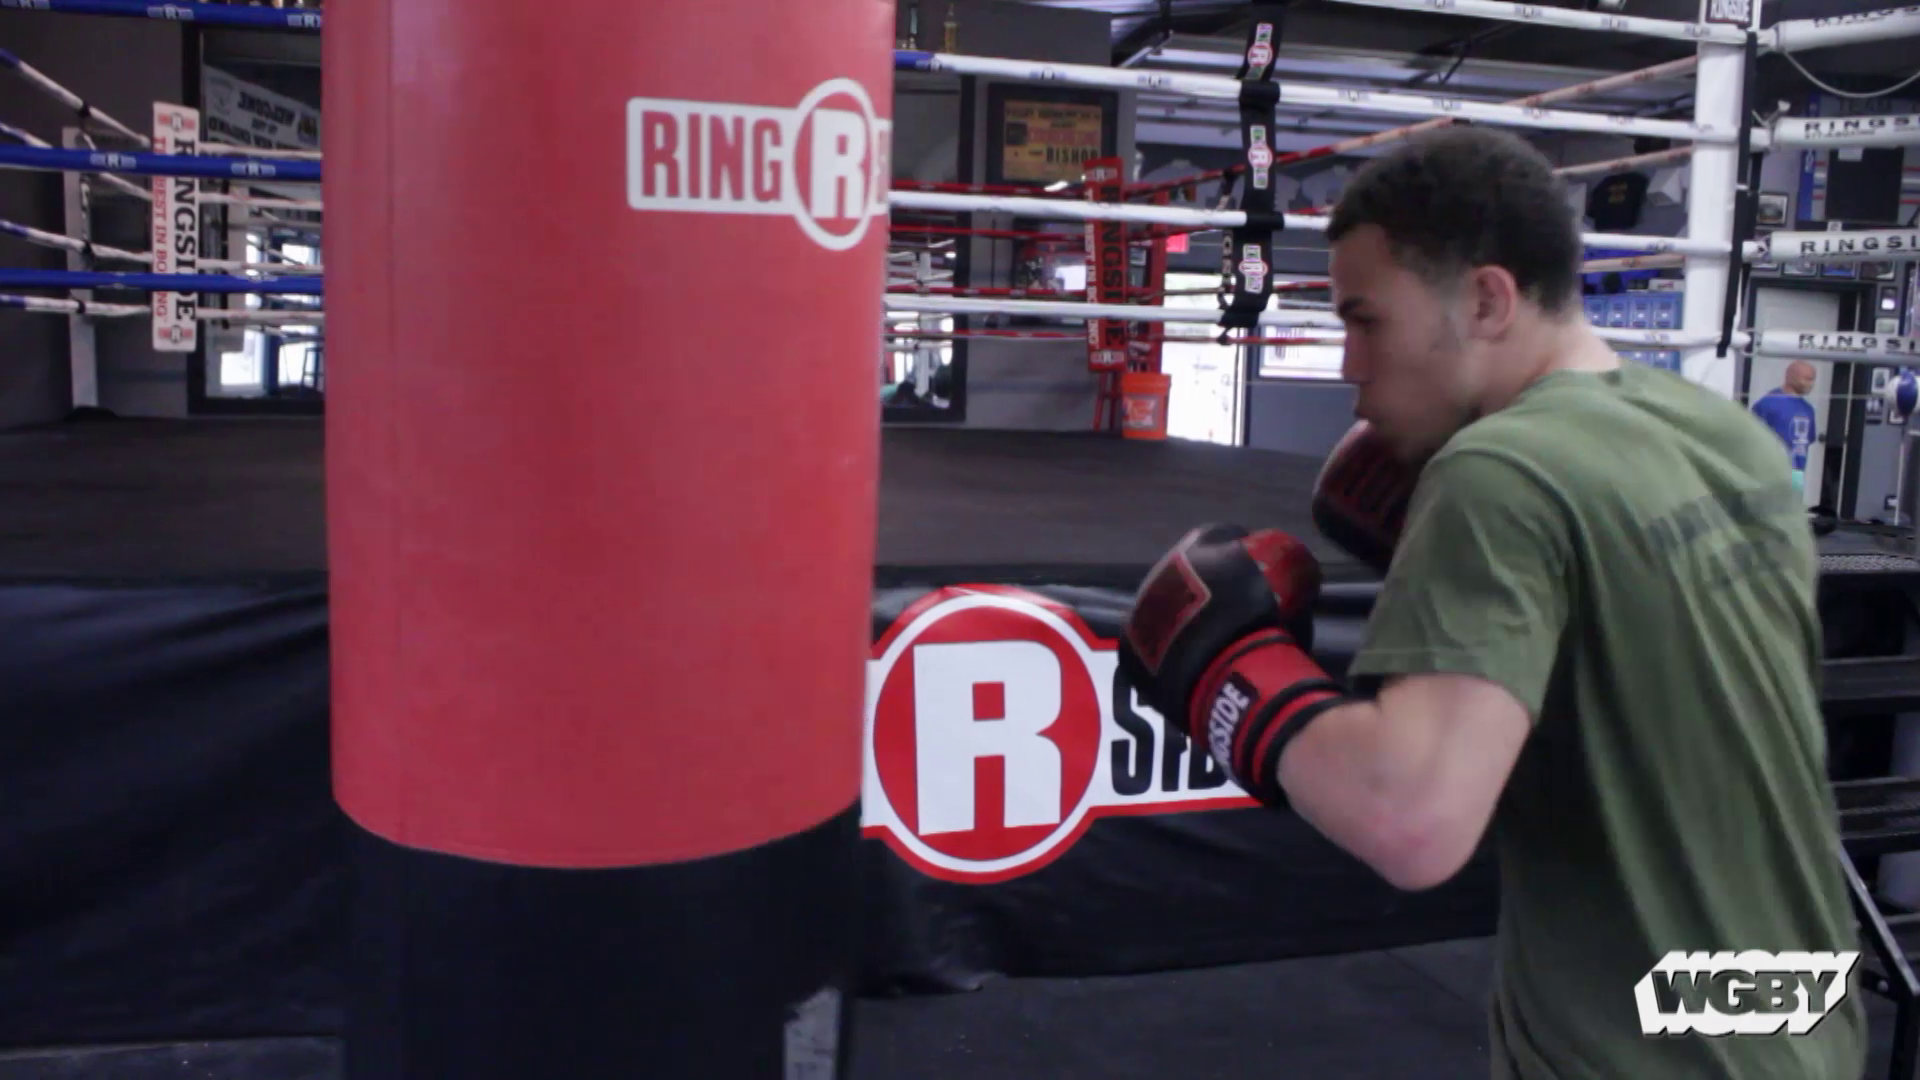 Founded by Officer Dean Fay in 2016, Springfield, MA's Central City Boxing and Barbell provides at-risk inner-city youth with structured, goal-orientated boxing and weightlifting training programs. Producer Alejandro Cameron visits the gym to take a look at Fay's inspiring work.